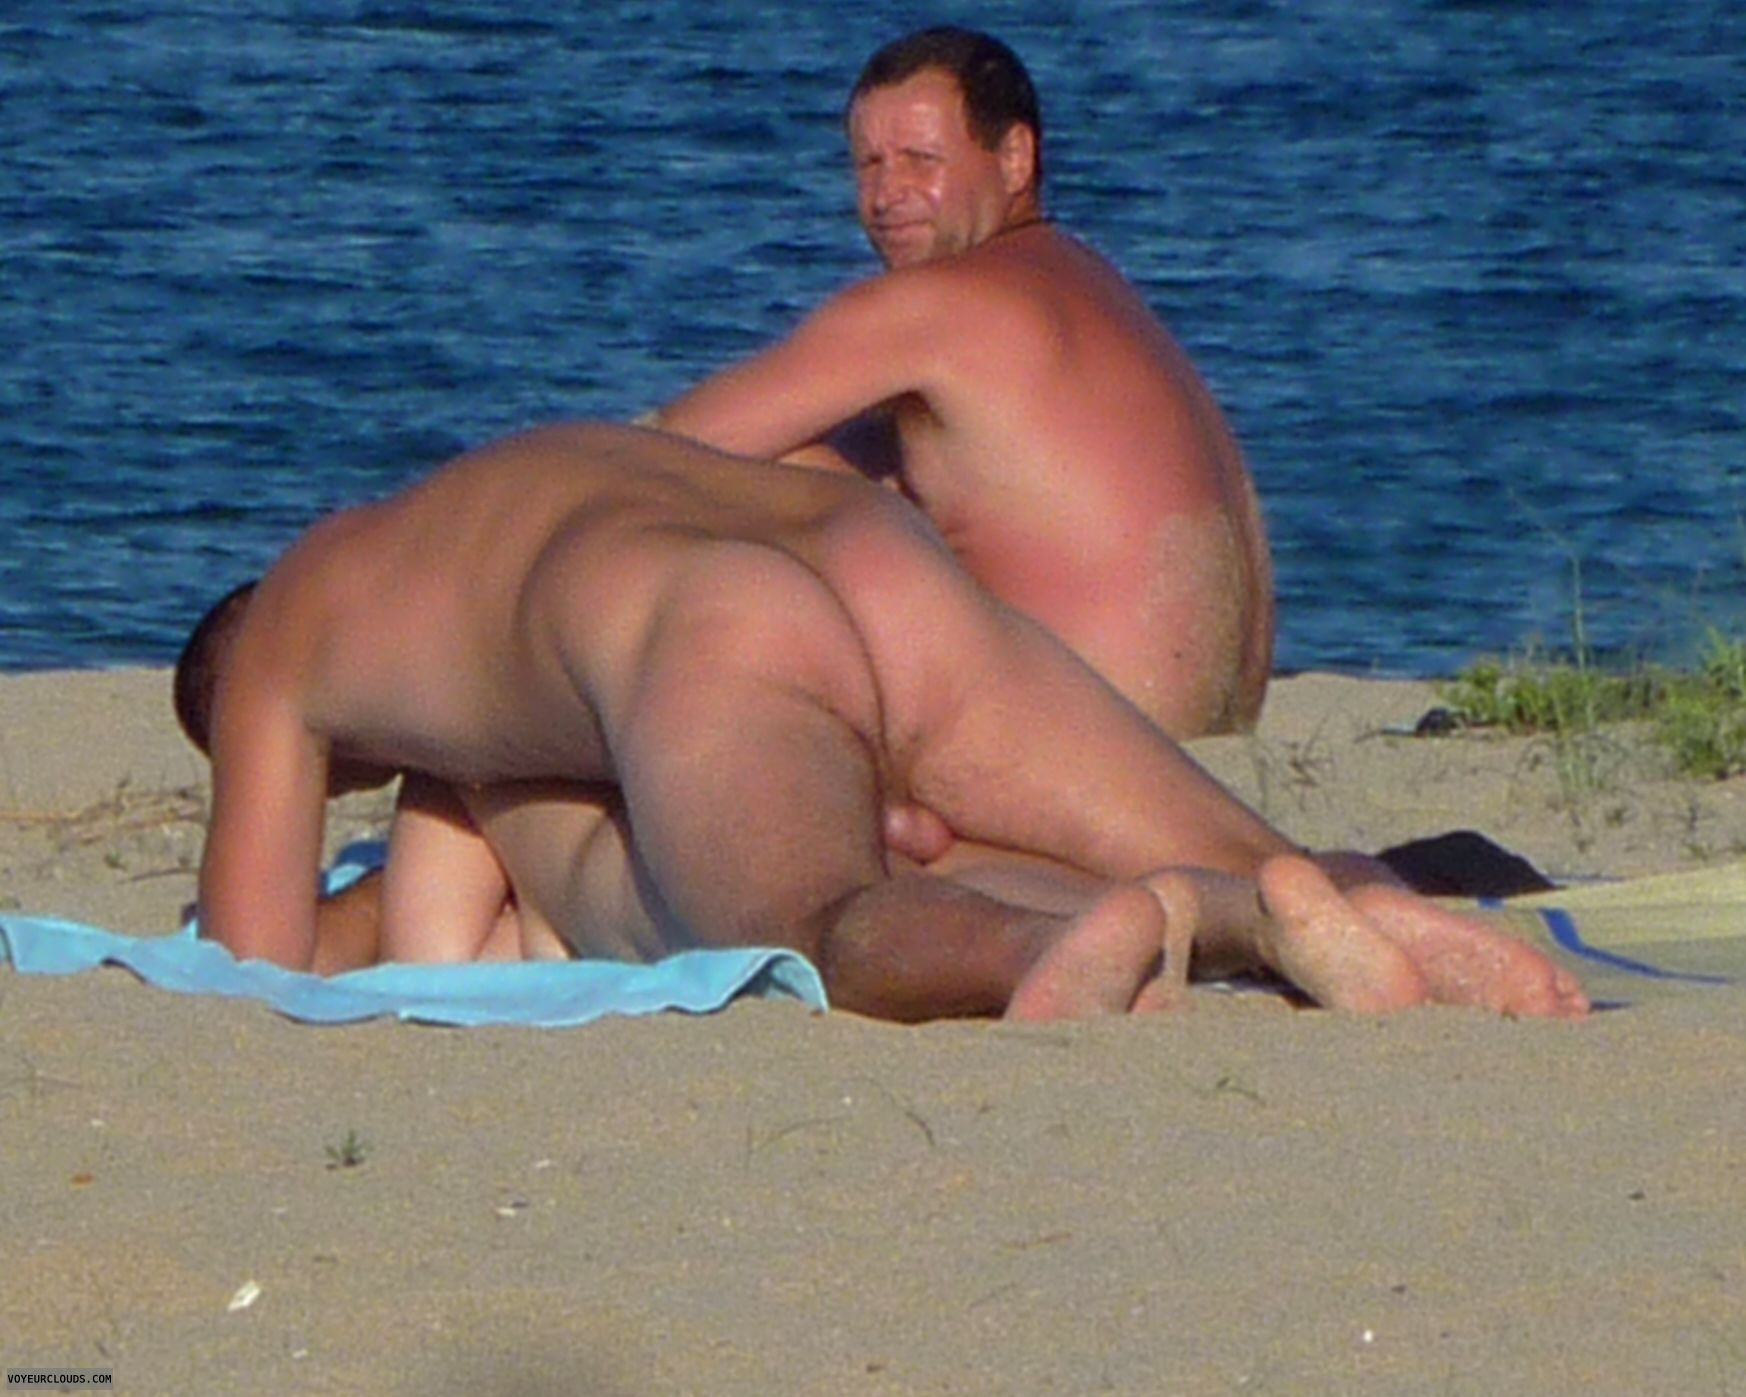 nudist voyeur beach sex jpg 422x640